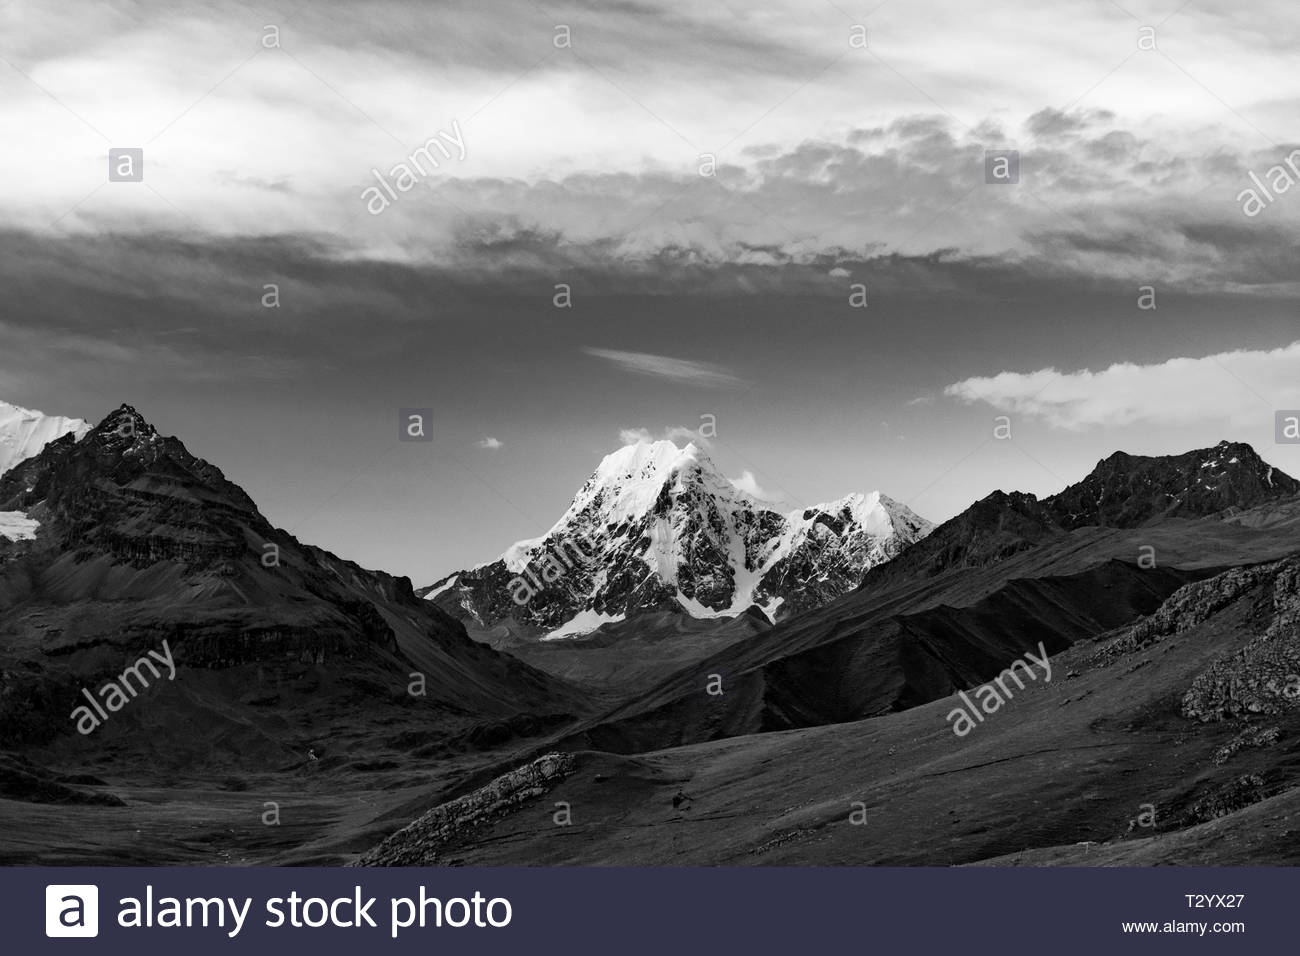 Black and white photo of the Ausangate mountainpeak in the Peruvian Andes near Cusco - Stock Image